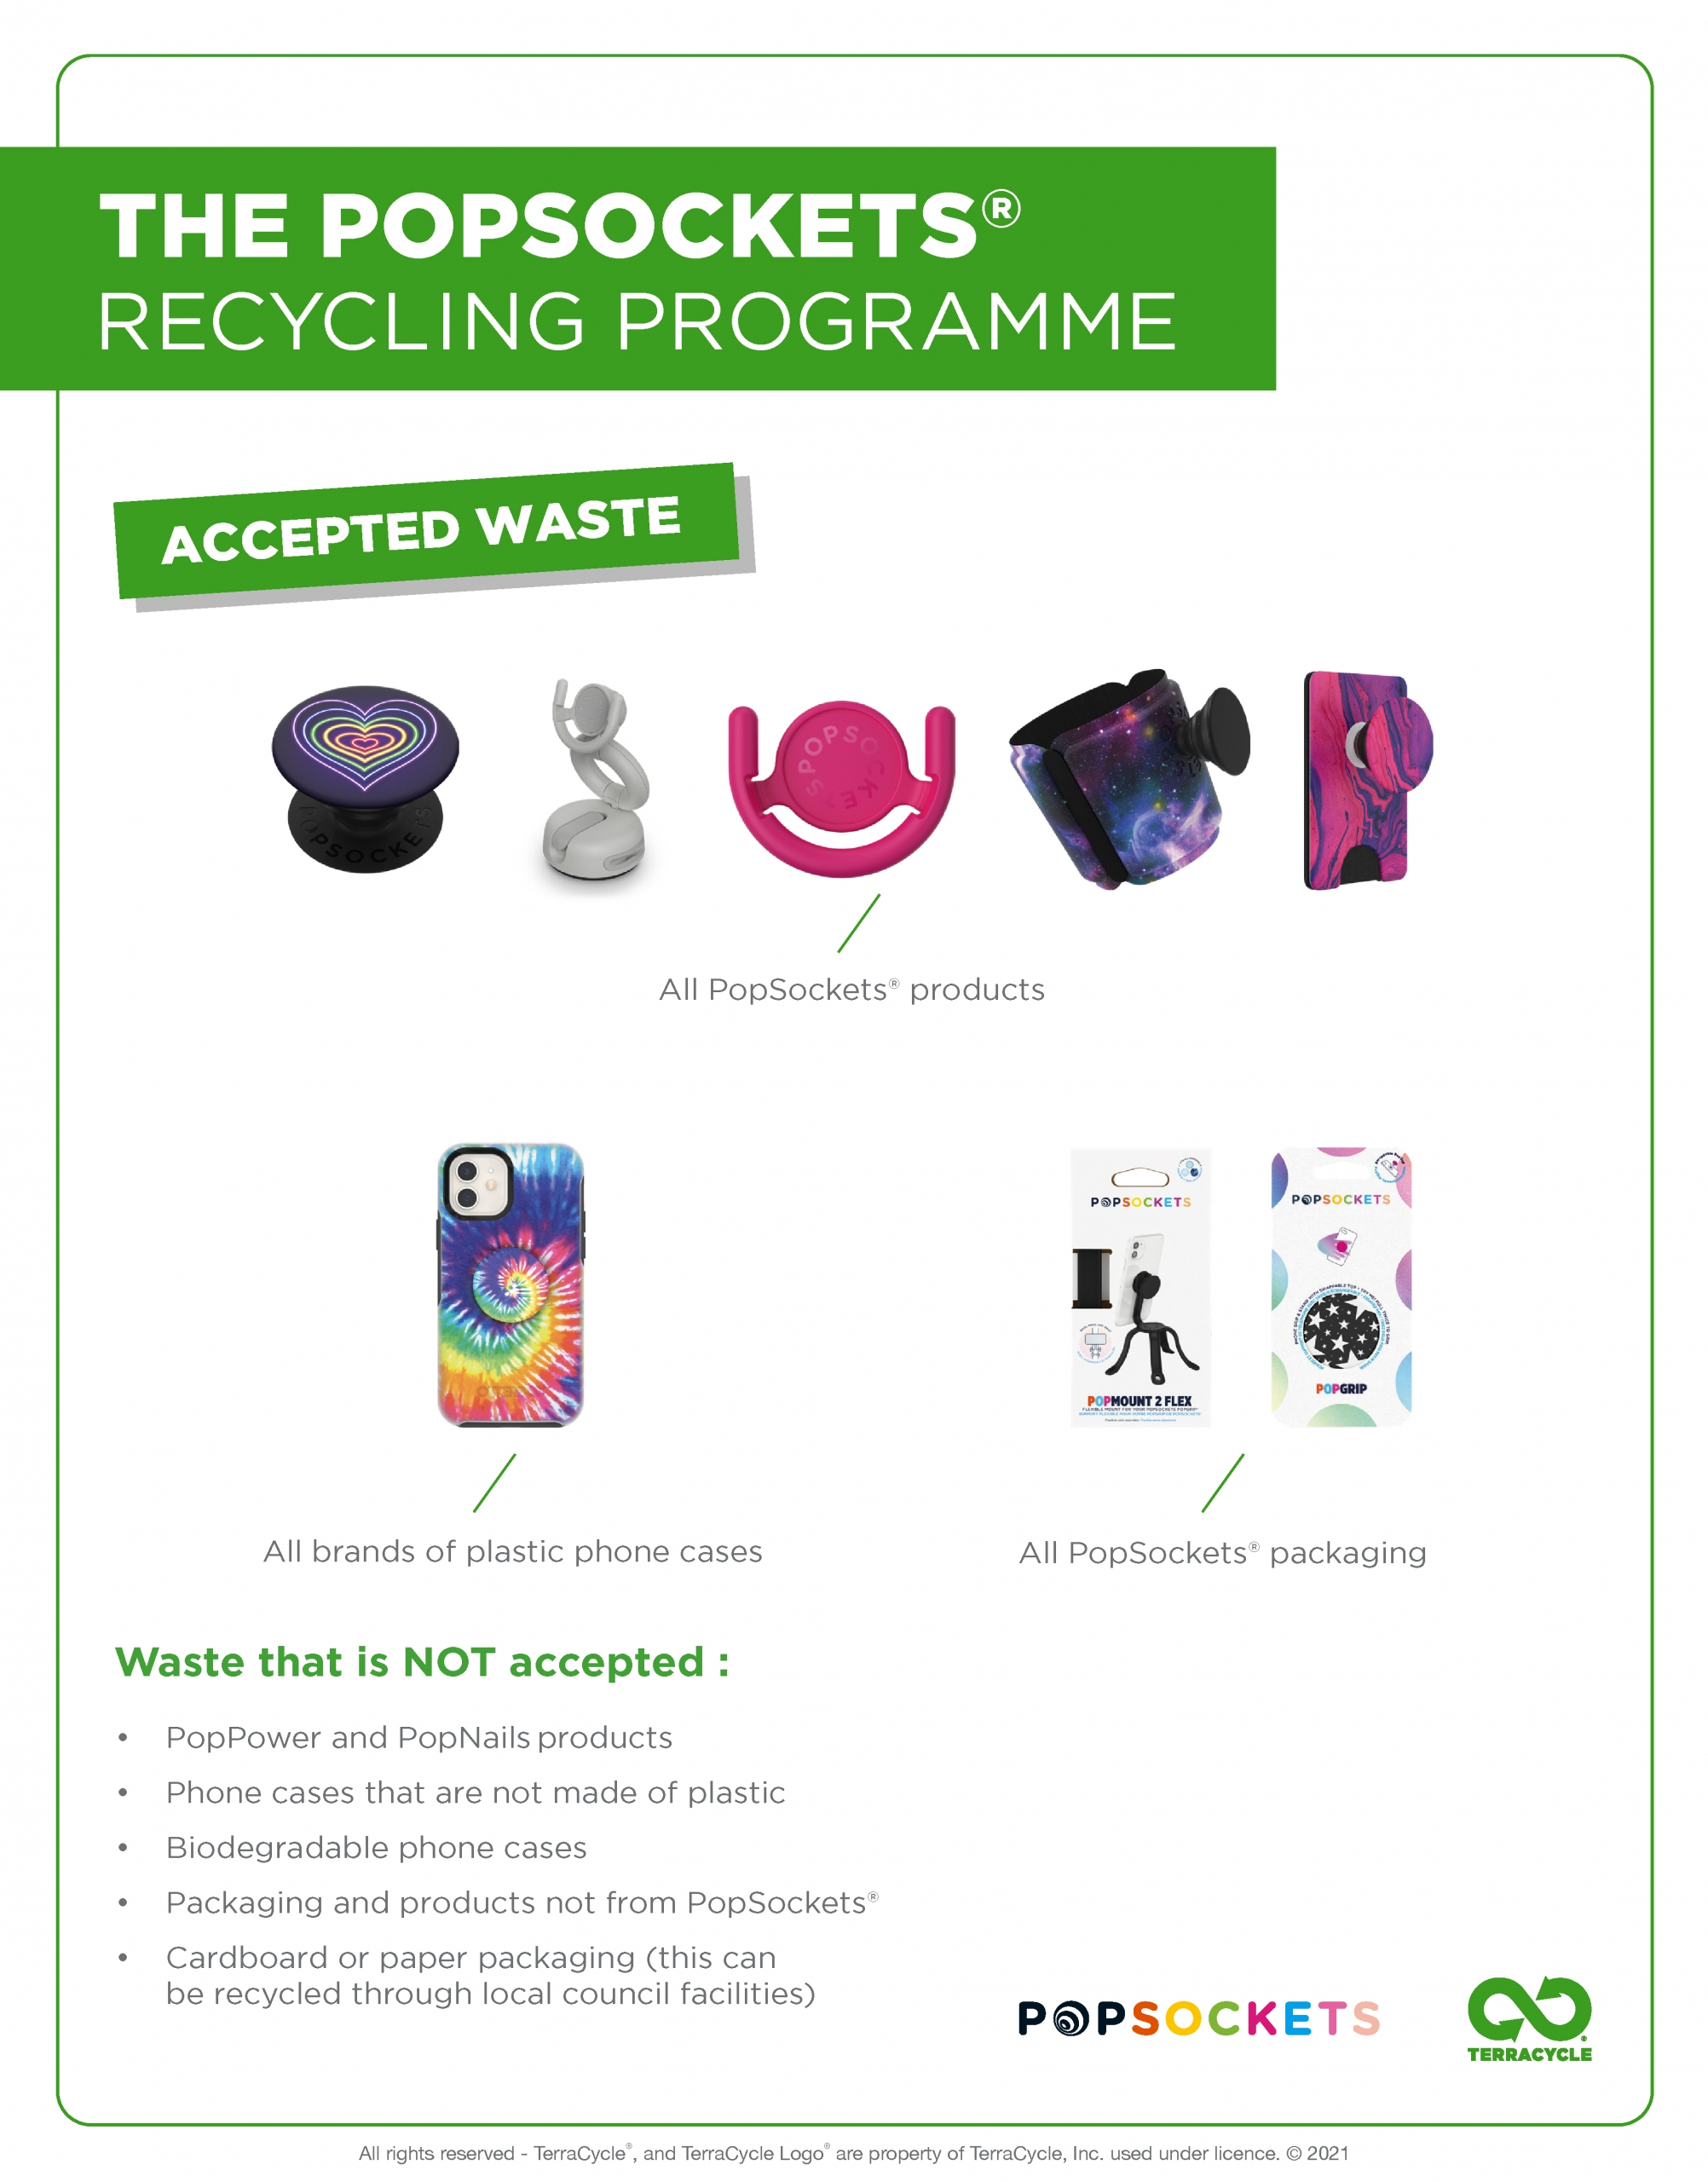 Pop sockets recycling scheme